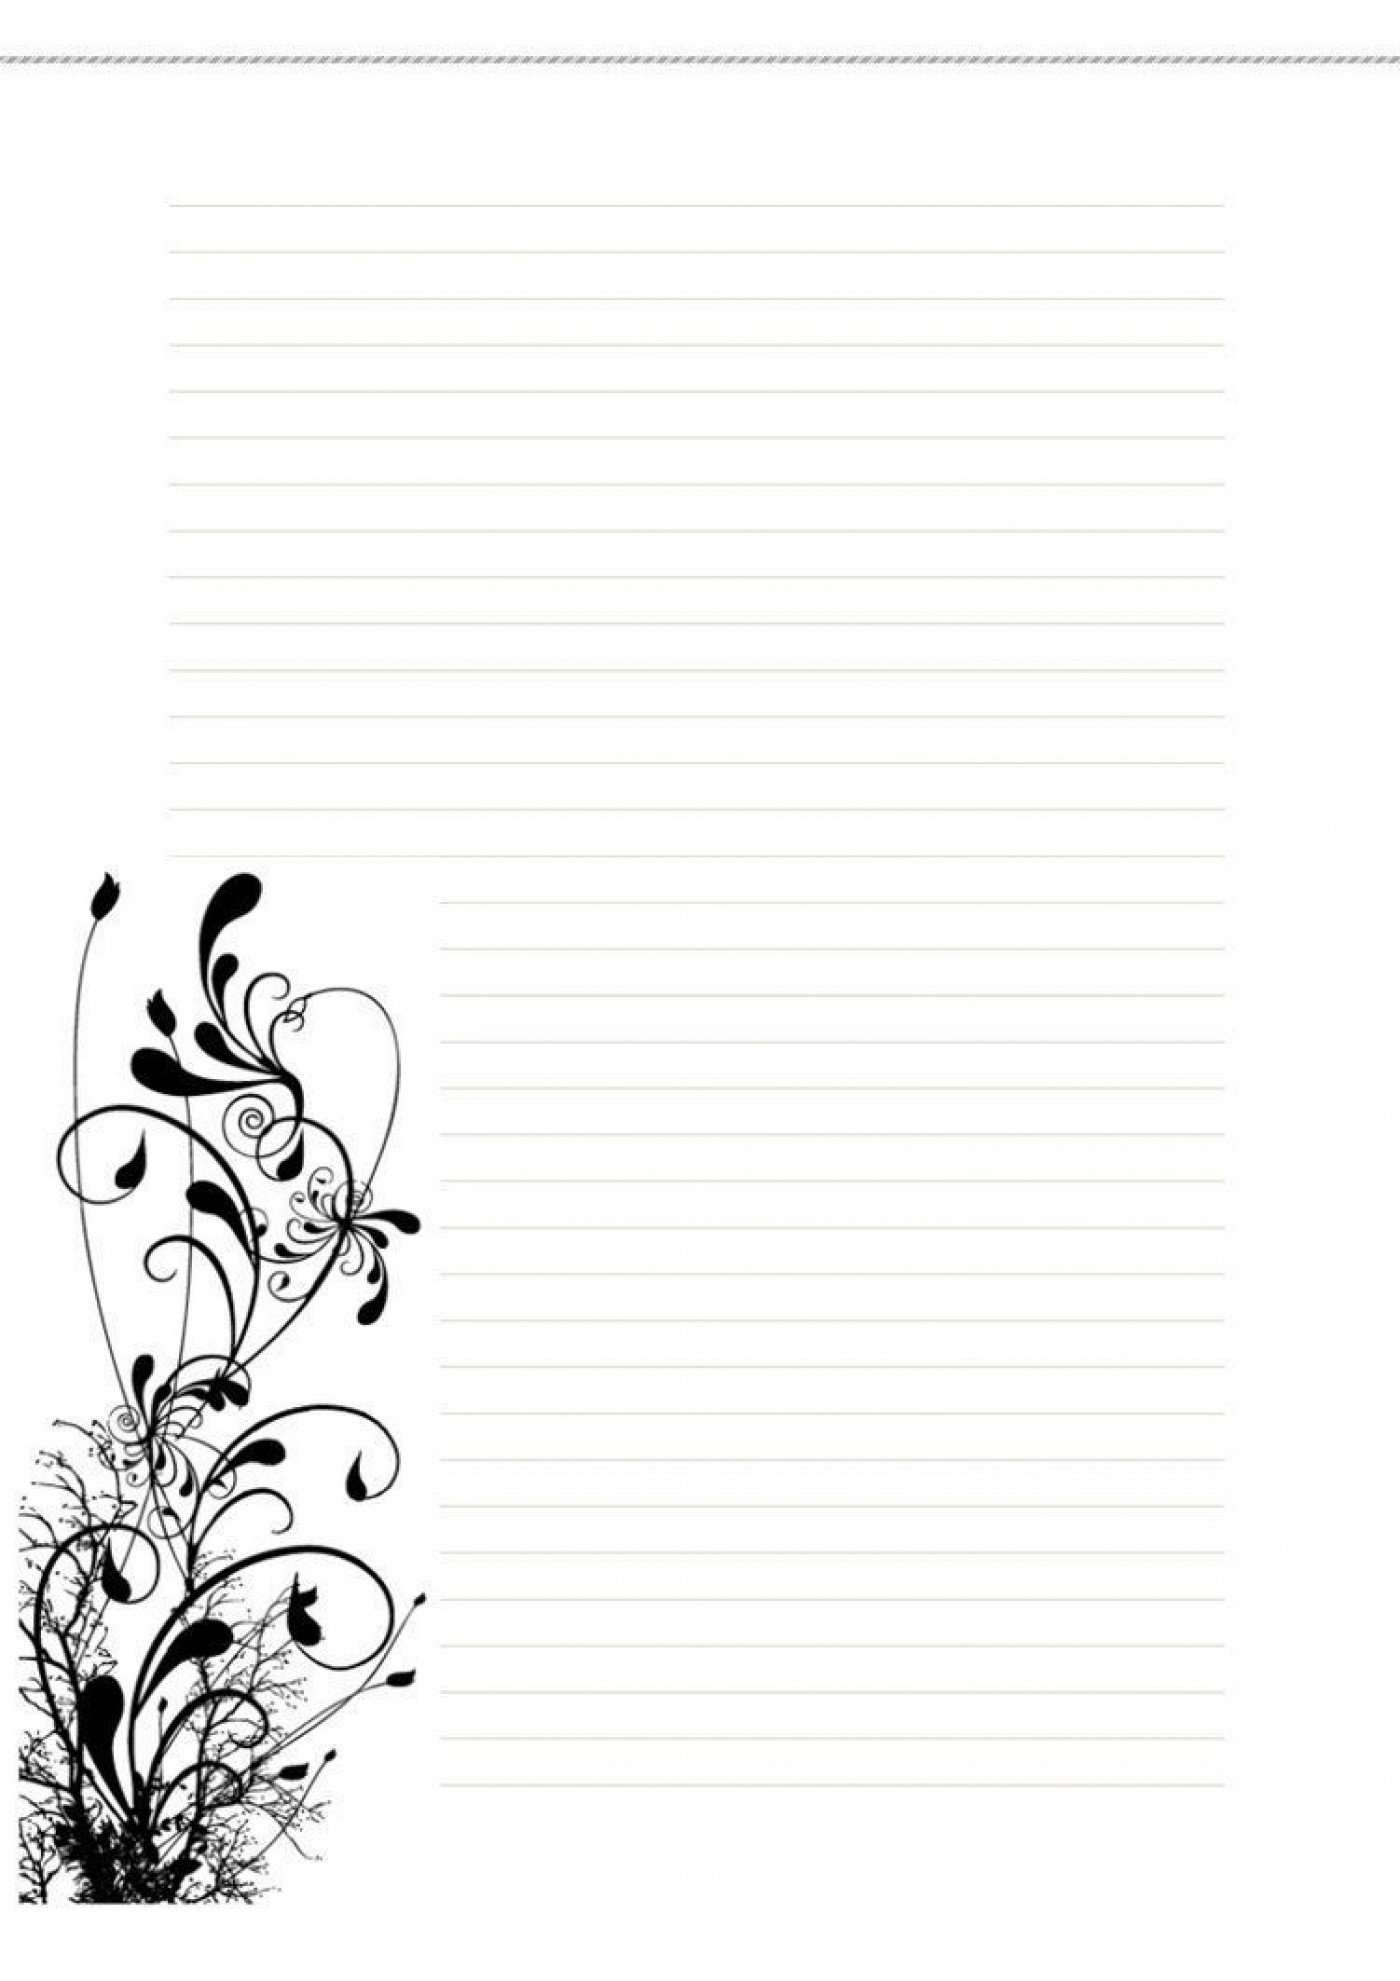 006 Incredible Free Printable Stationery Paper Template Image 1400